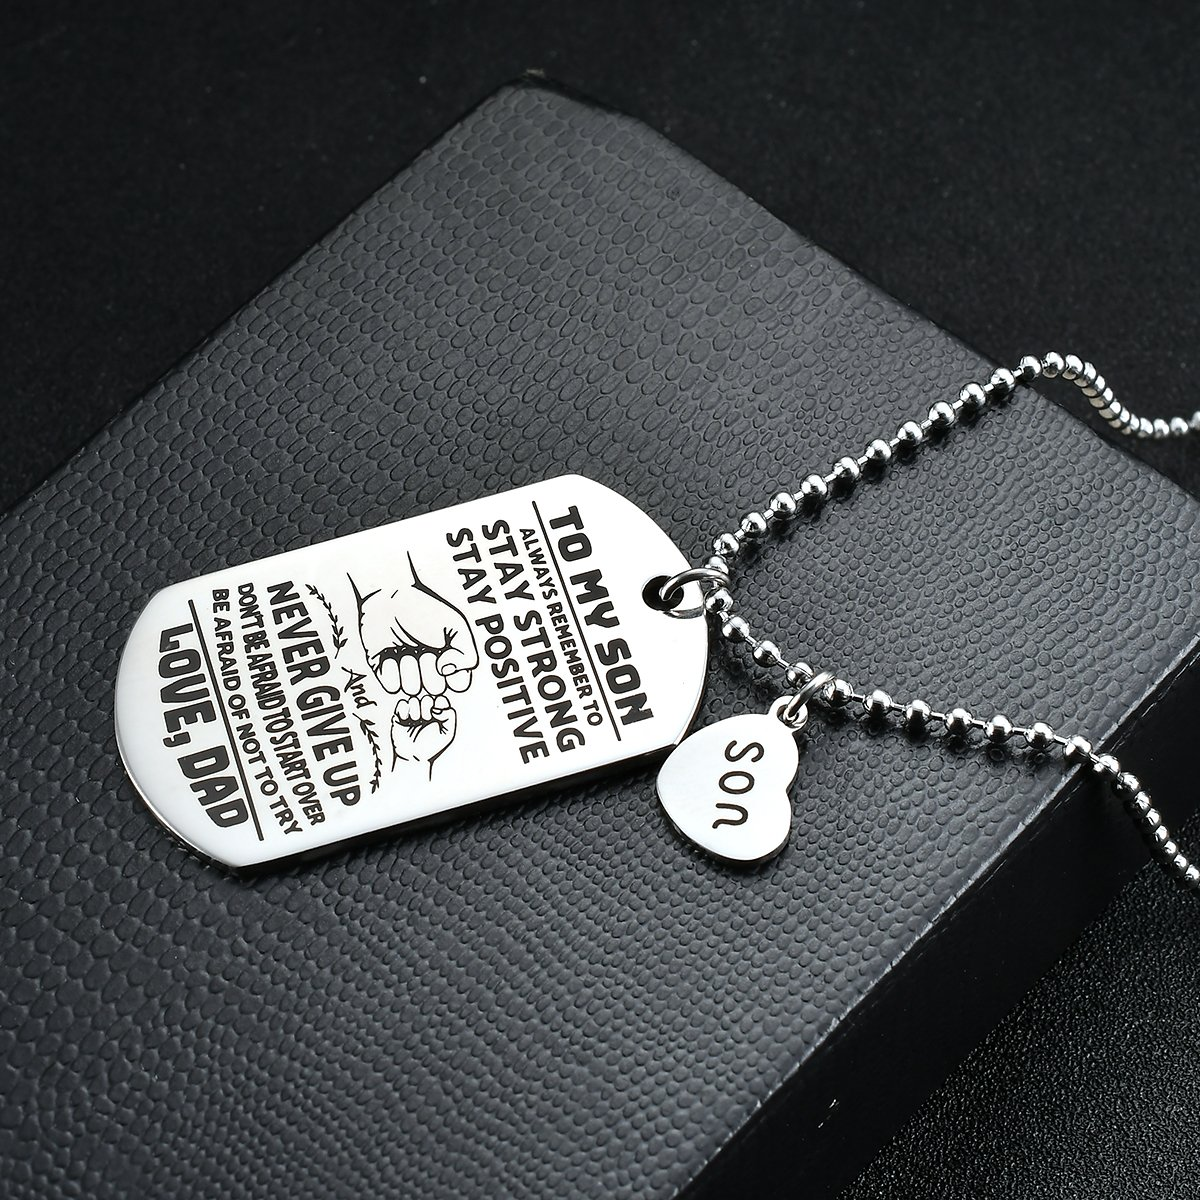 NOVLOVE To My Son from dad Never Forget That I Love Dad You Dog Tag Father Daddy Stay Positive Never Give Up Quotes Military Air Force Navy Necklace Gift Best Son Birthday Graduation by NOVLOVE (Image #5)